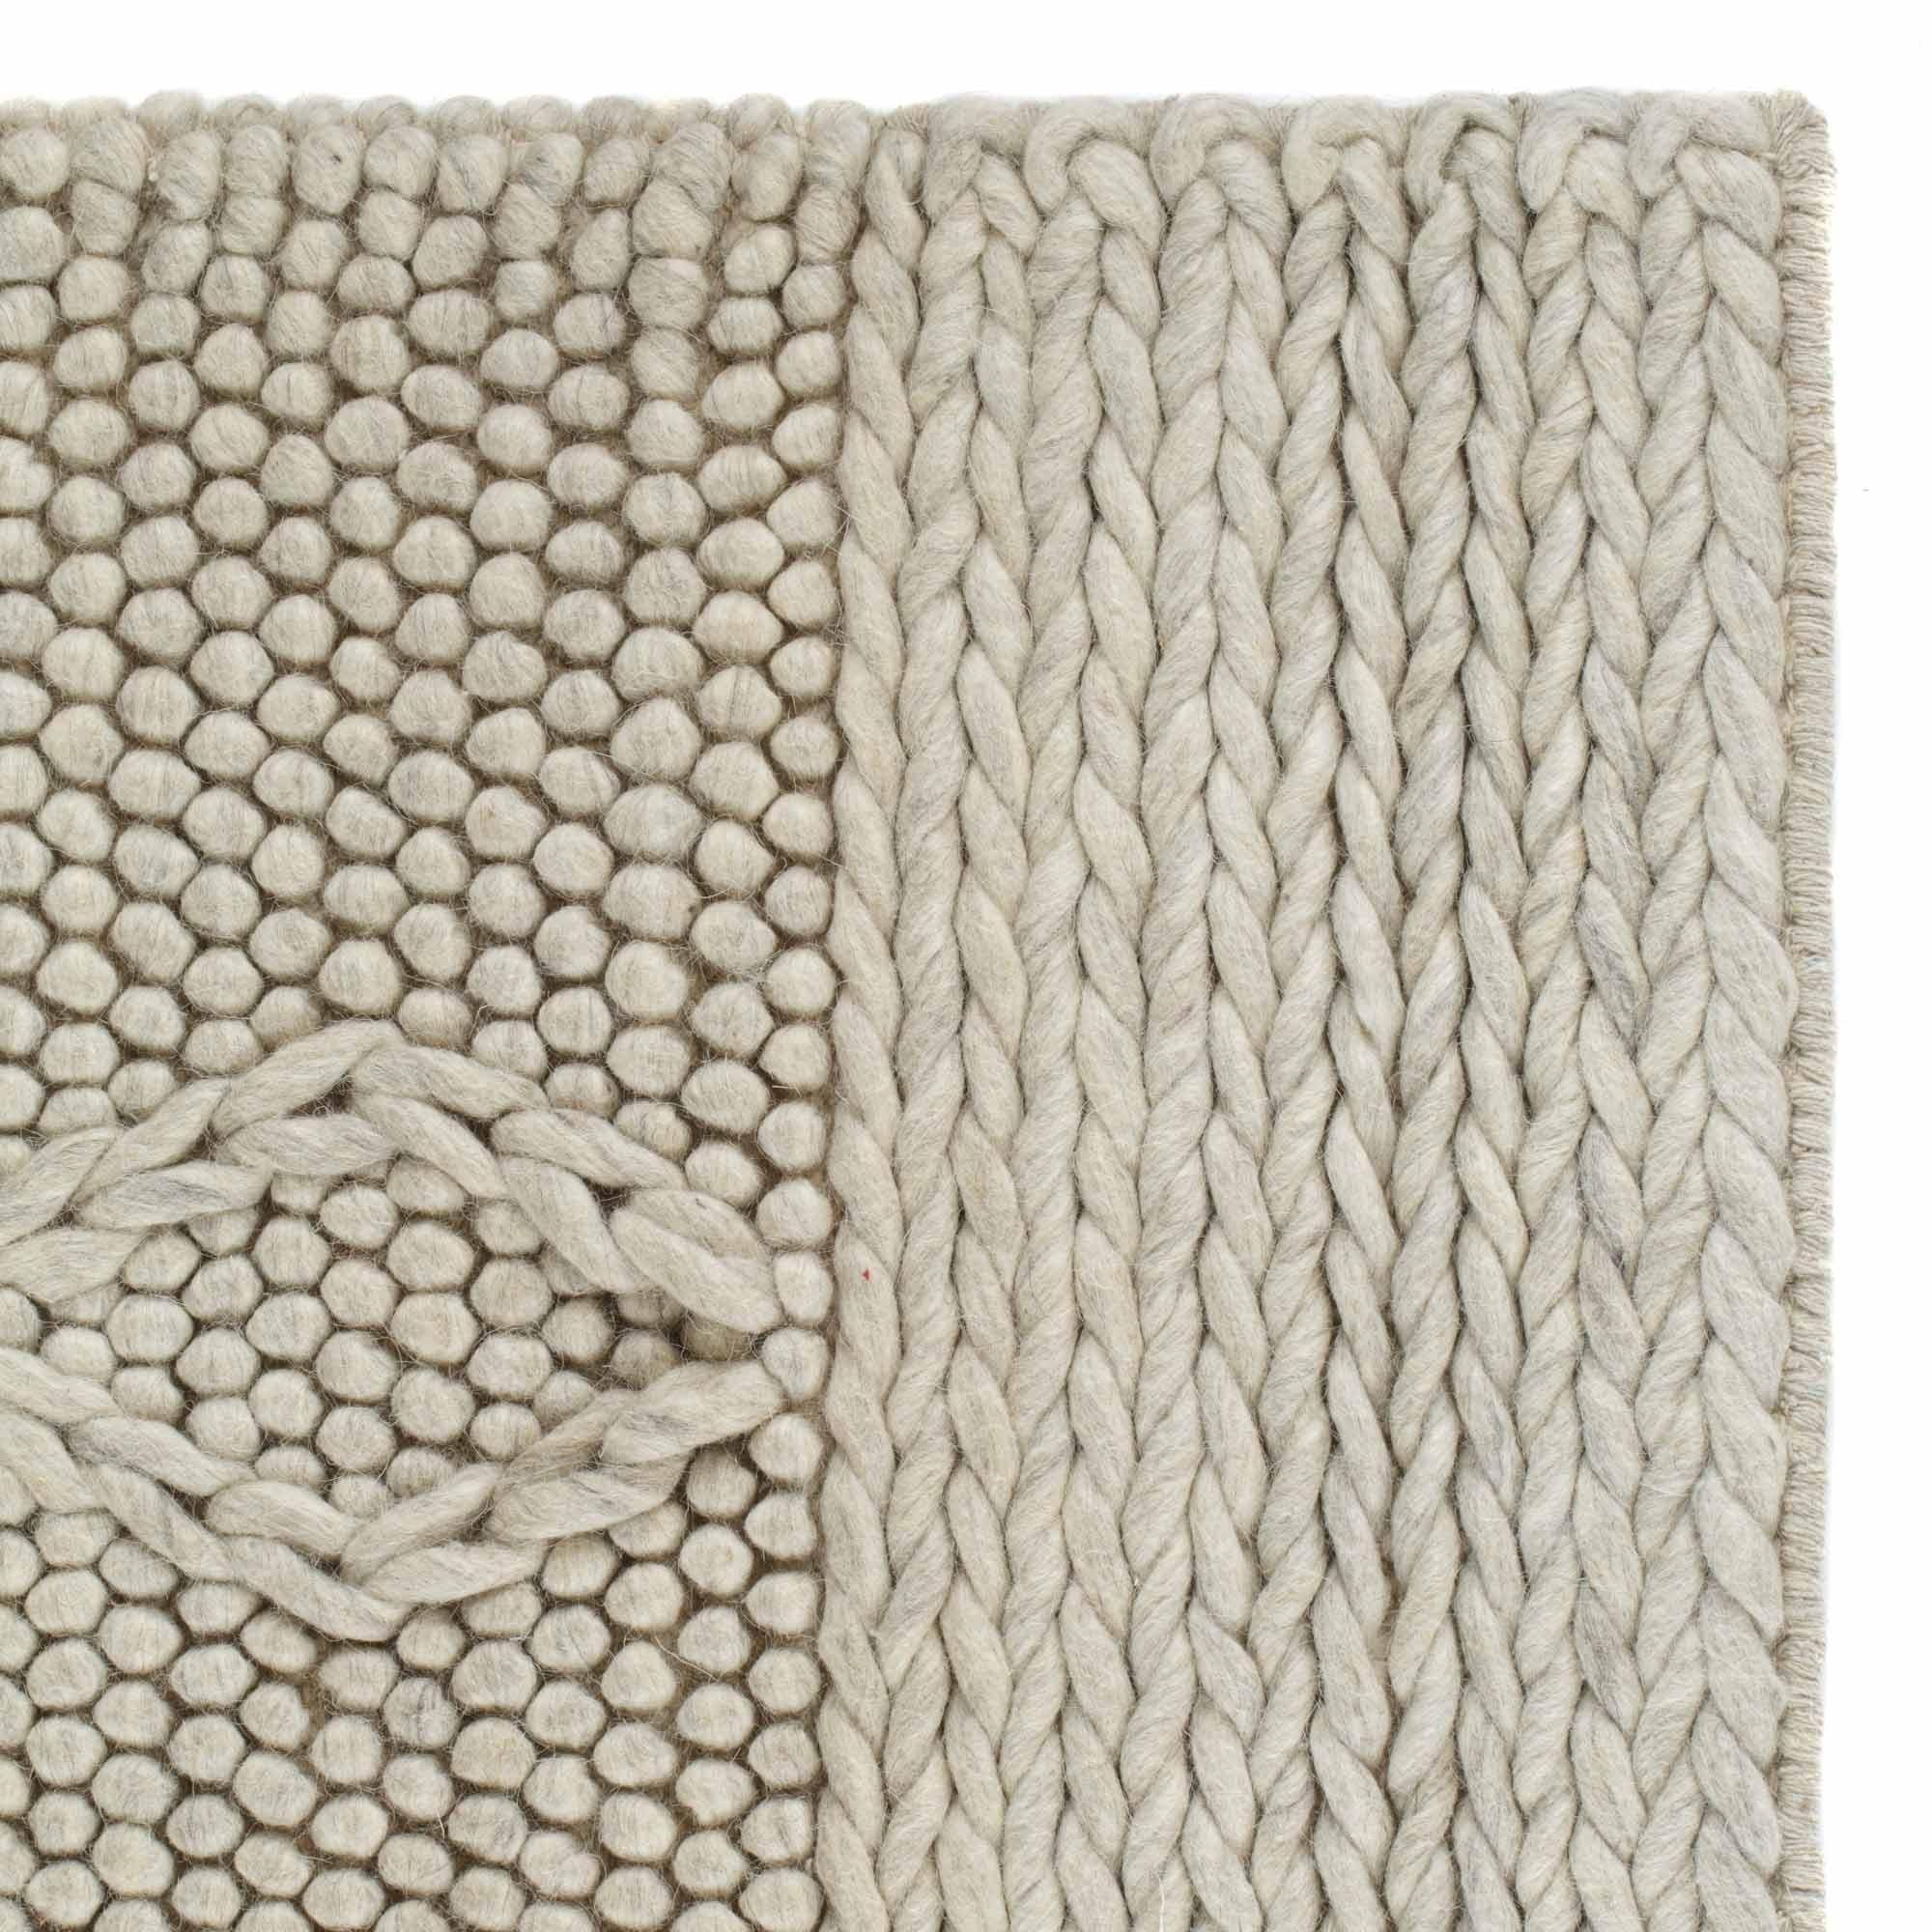 Kilen Rug Cream Cable Knit Design